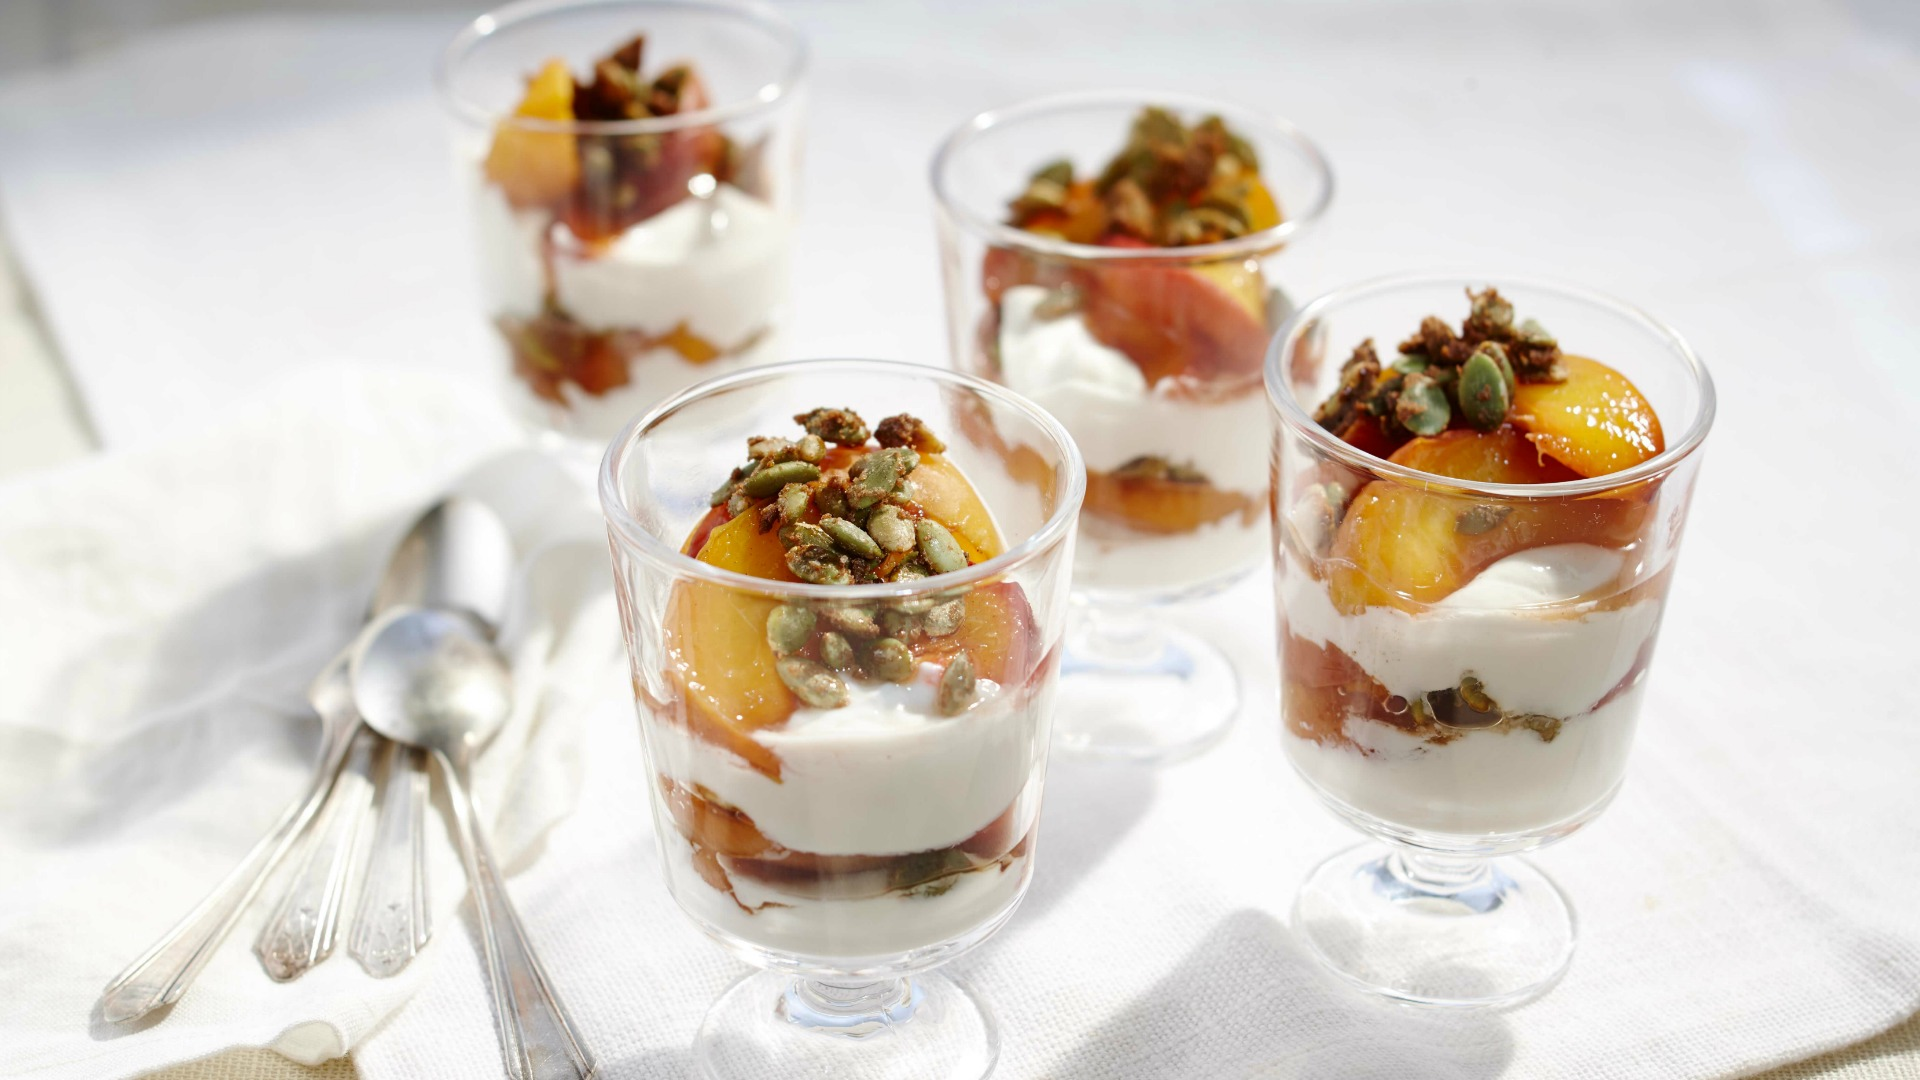 Four glasses filled with yogurt, sliced roasted peaches and pumpkin seeds